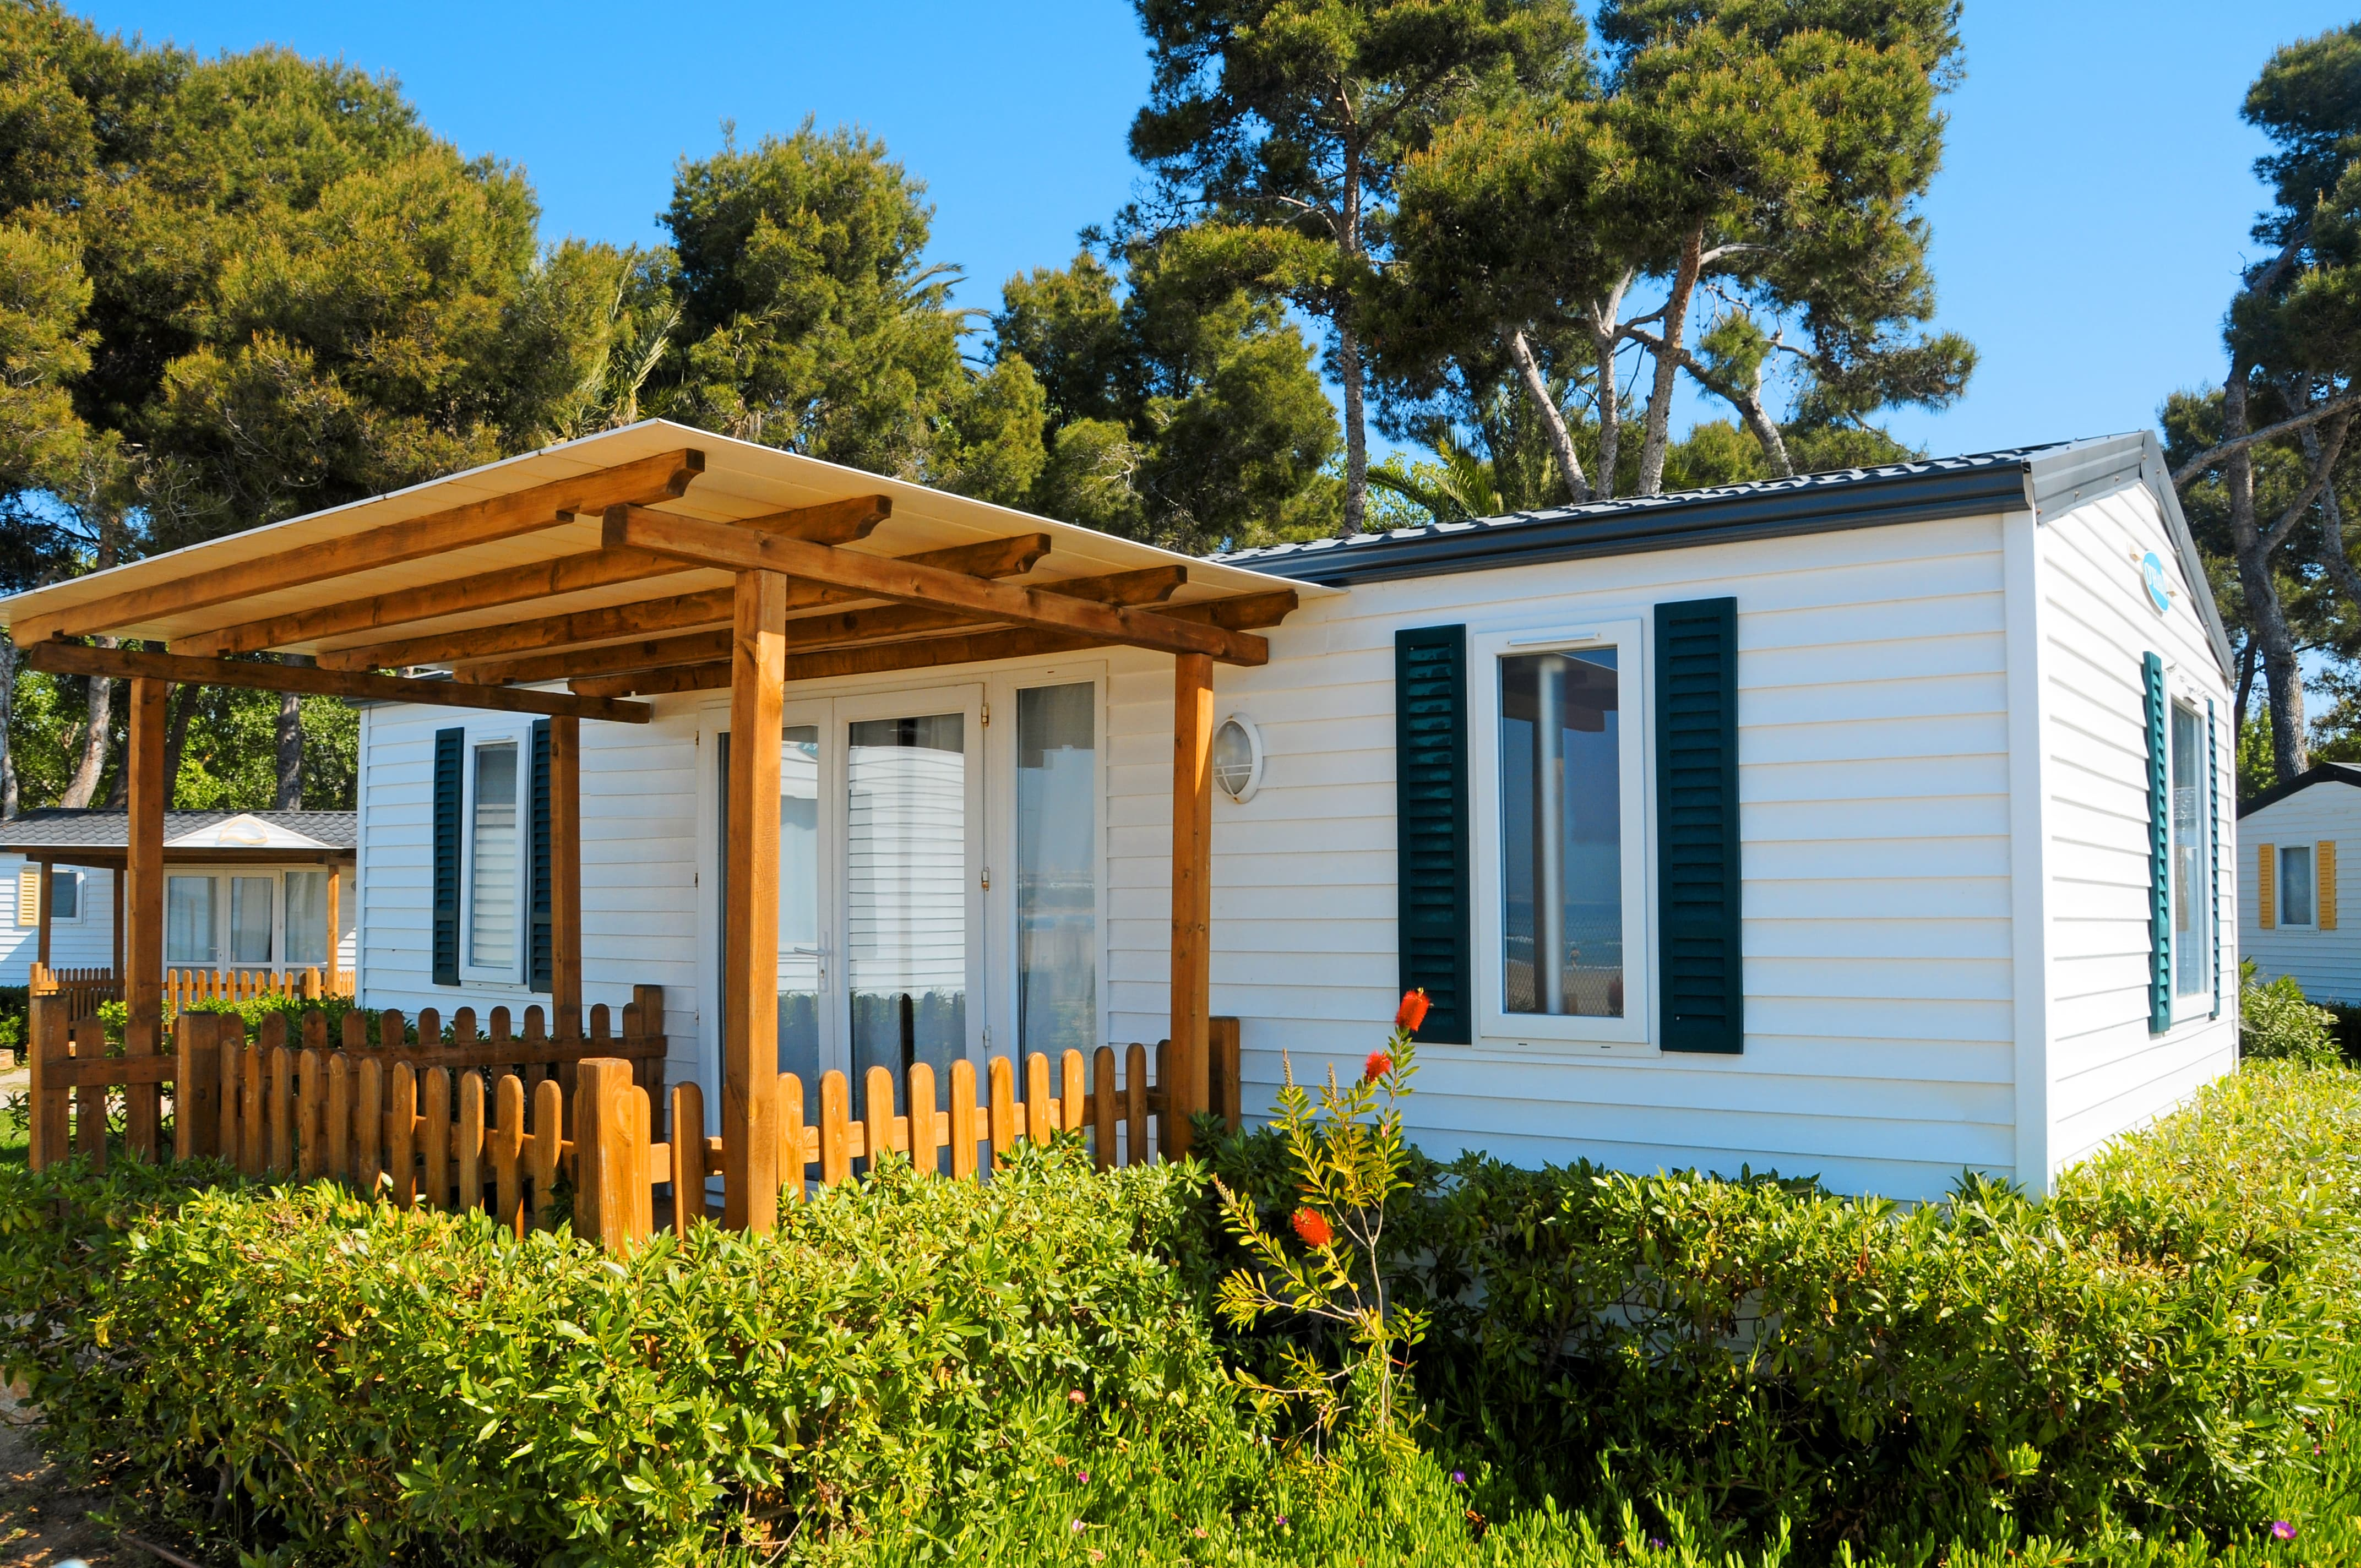 Reputable Moving Into A Mobile Home Priority Moving Services Moving A Mobile Home Without Axles Moving A Mobile Home Mobile Home On Sunny Day Tips Sc curbed Moving A Mobile Home